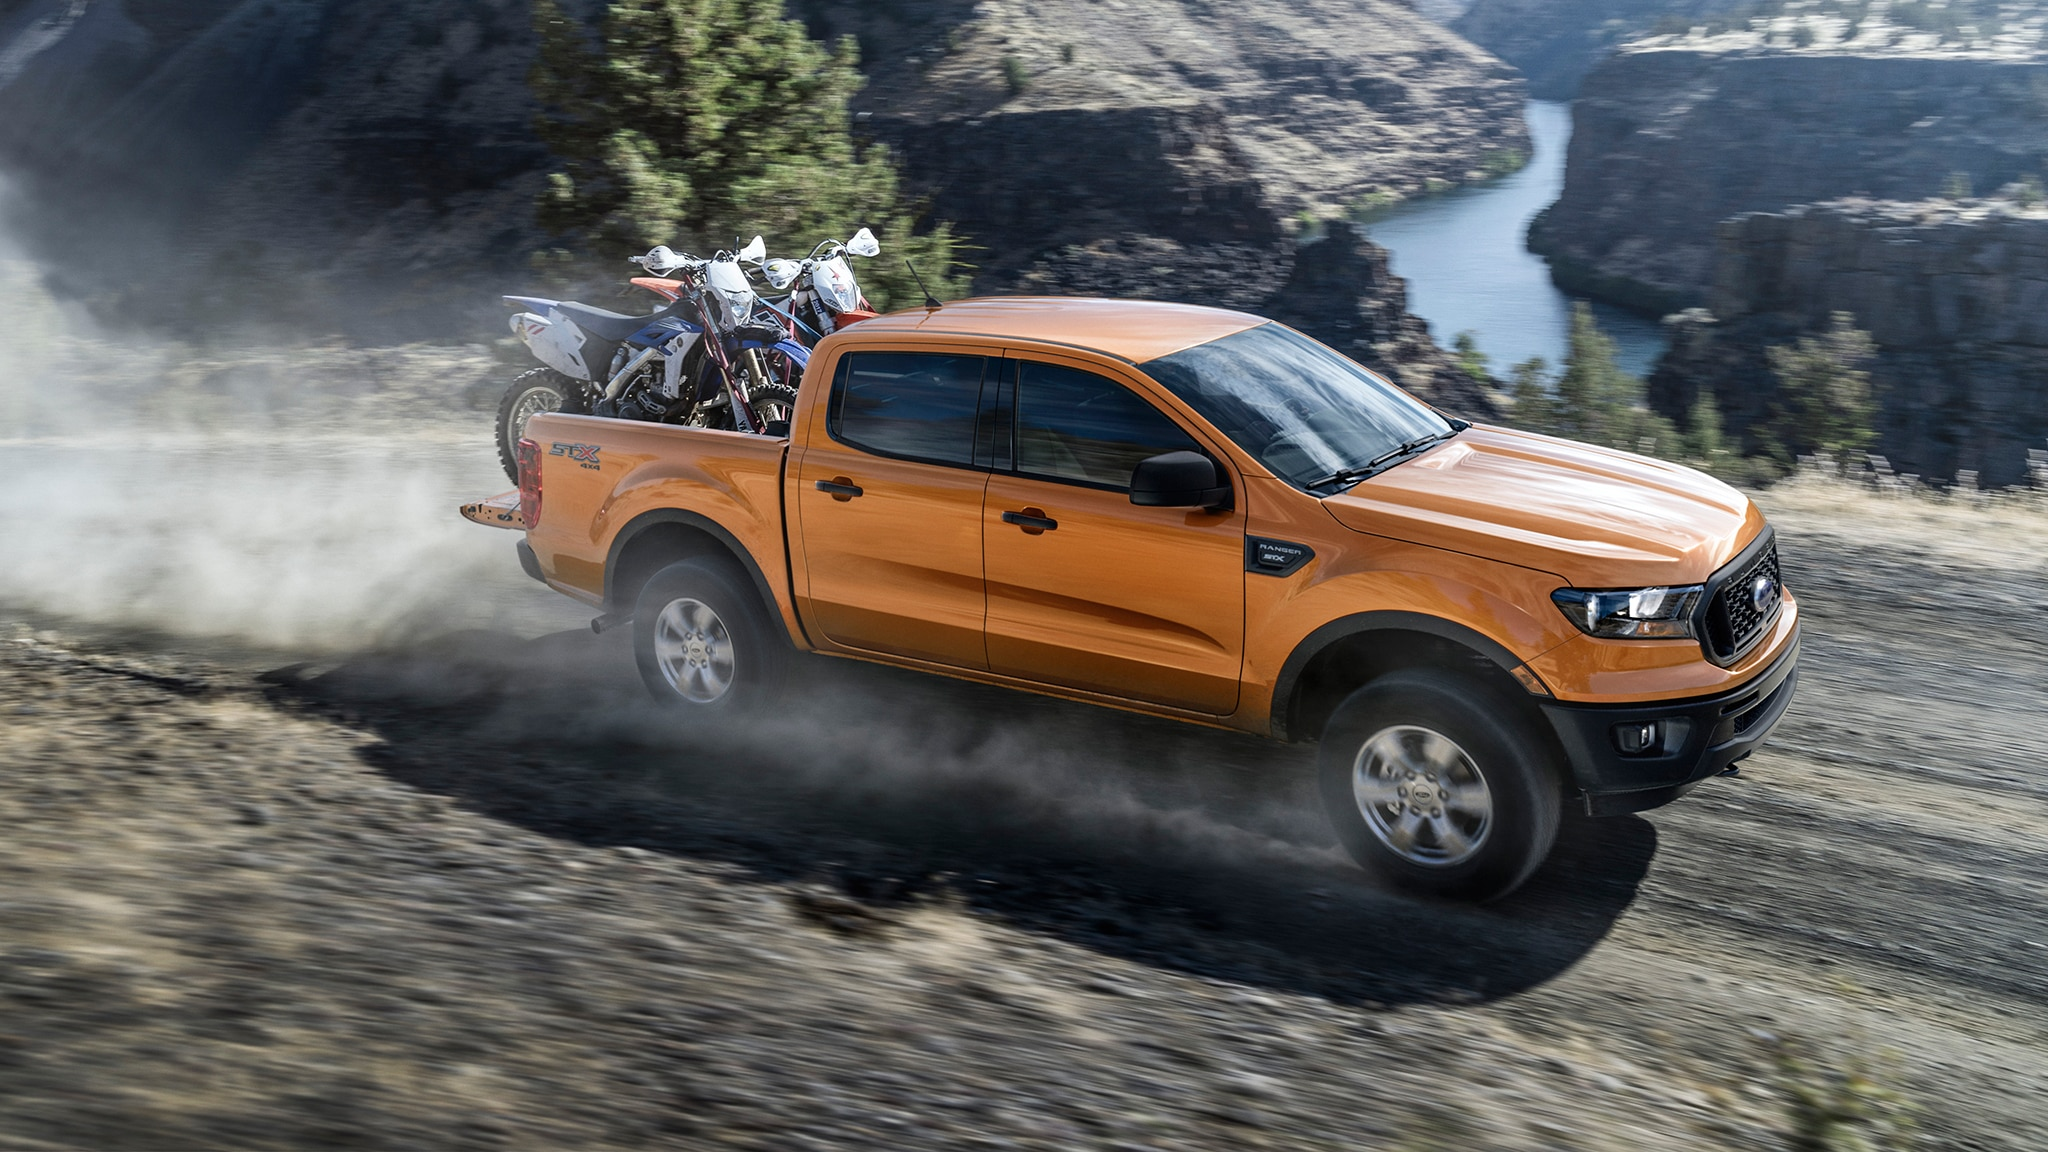 Ford Ranger EcoBoost Claimed To Have Best-In-Class Towing Prowess